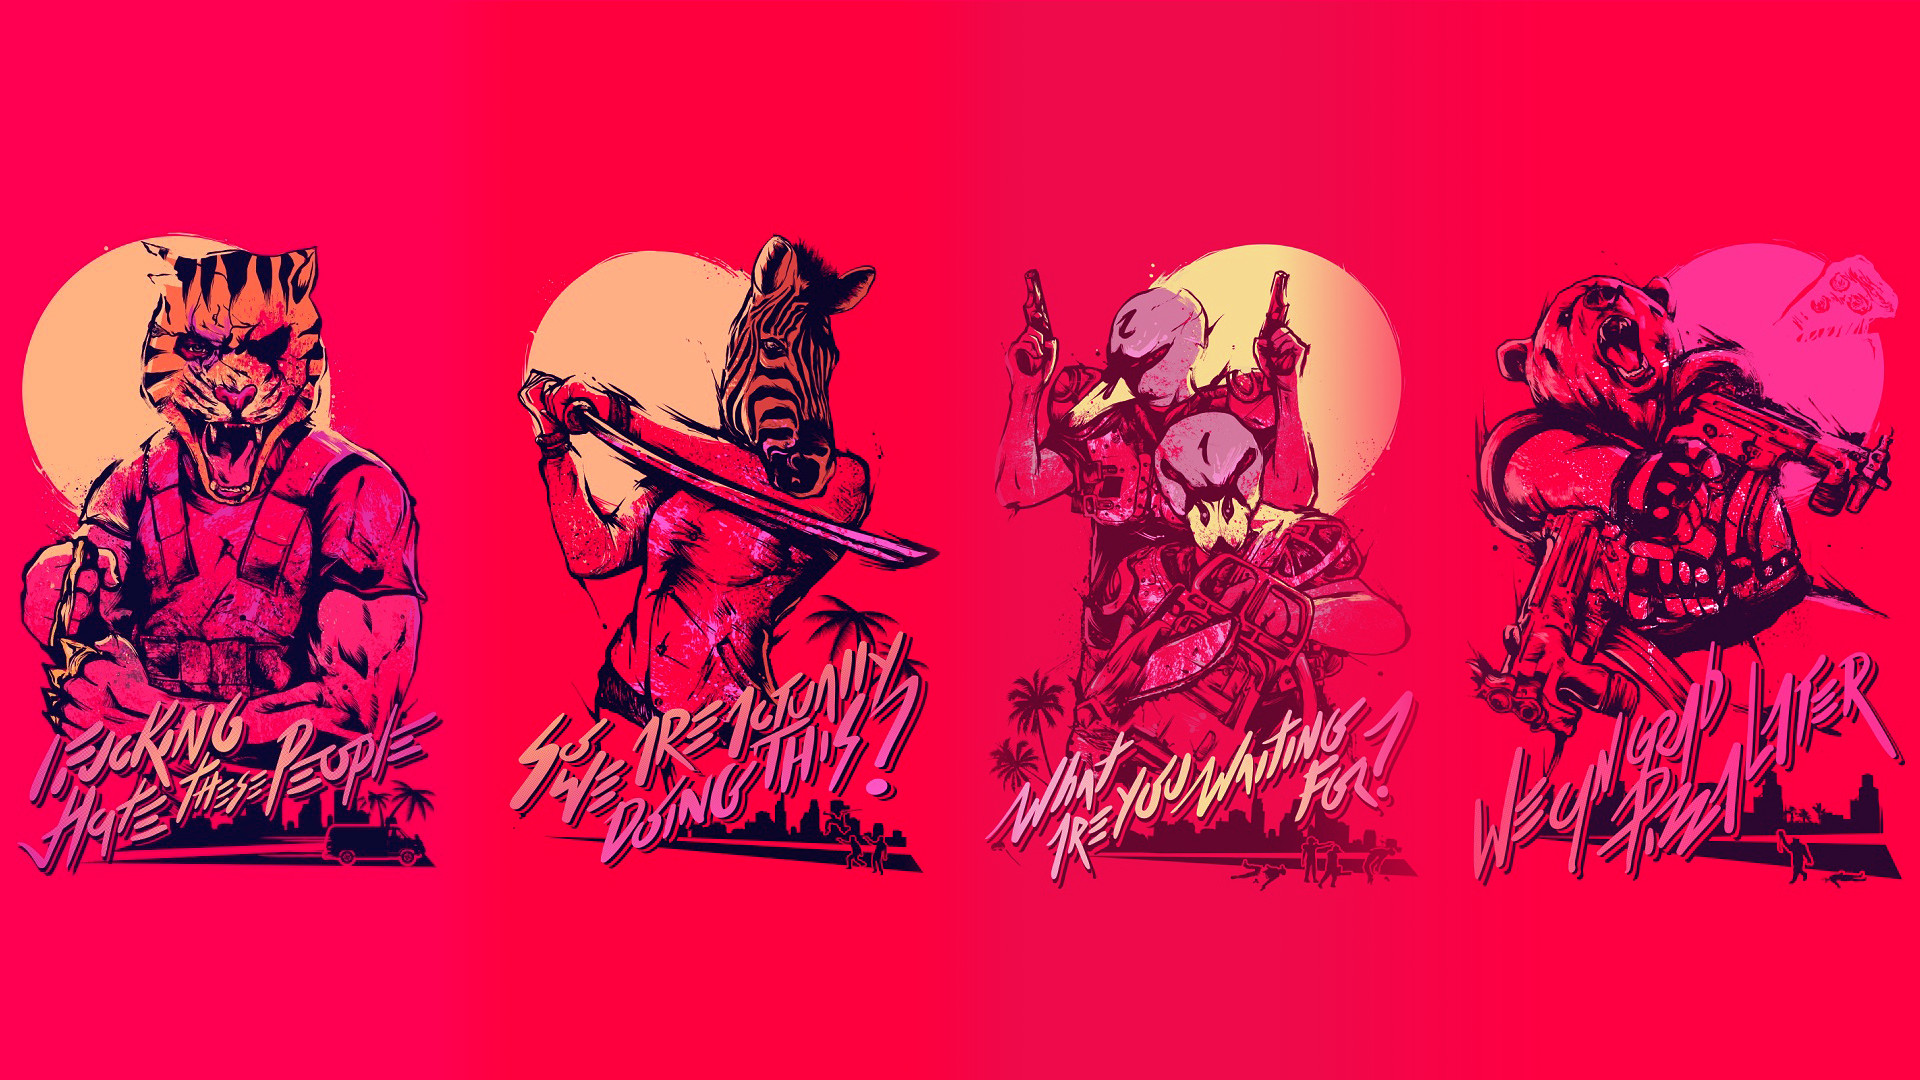 Jacket Hotline Miami Wallpapers (77+ images)